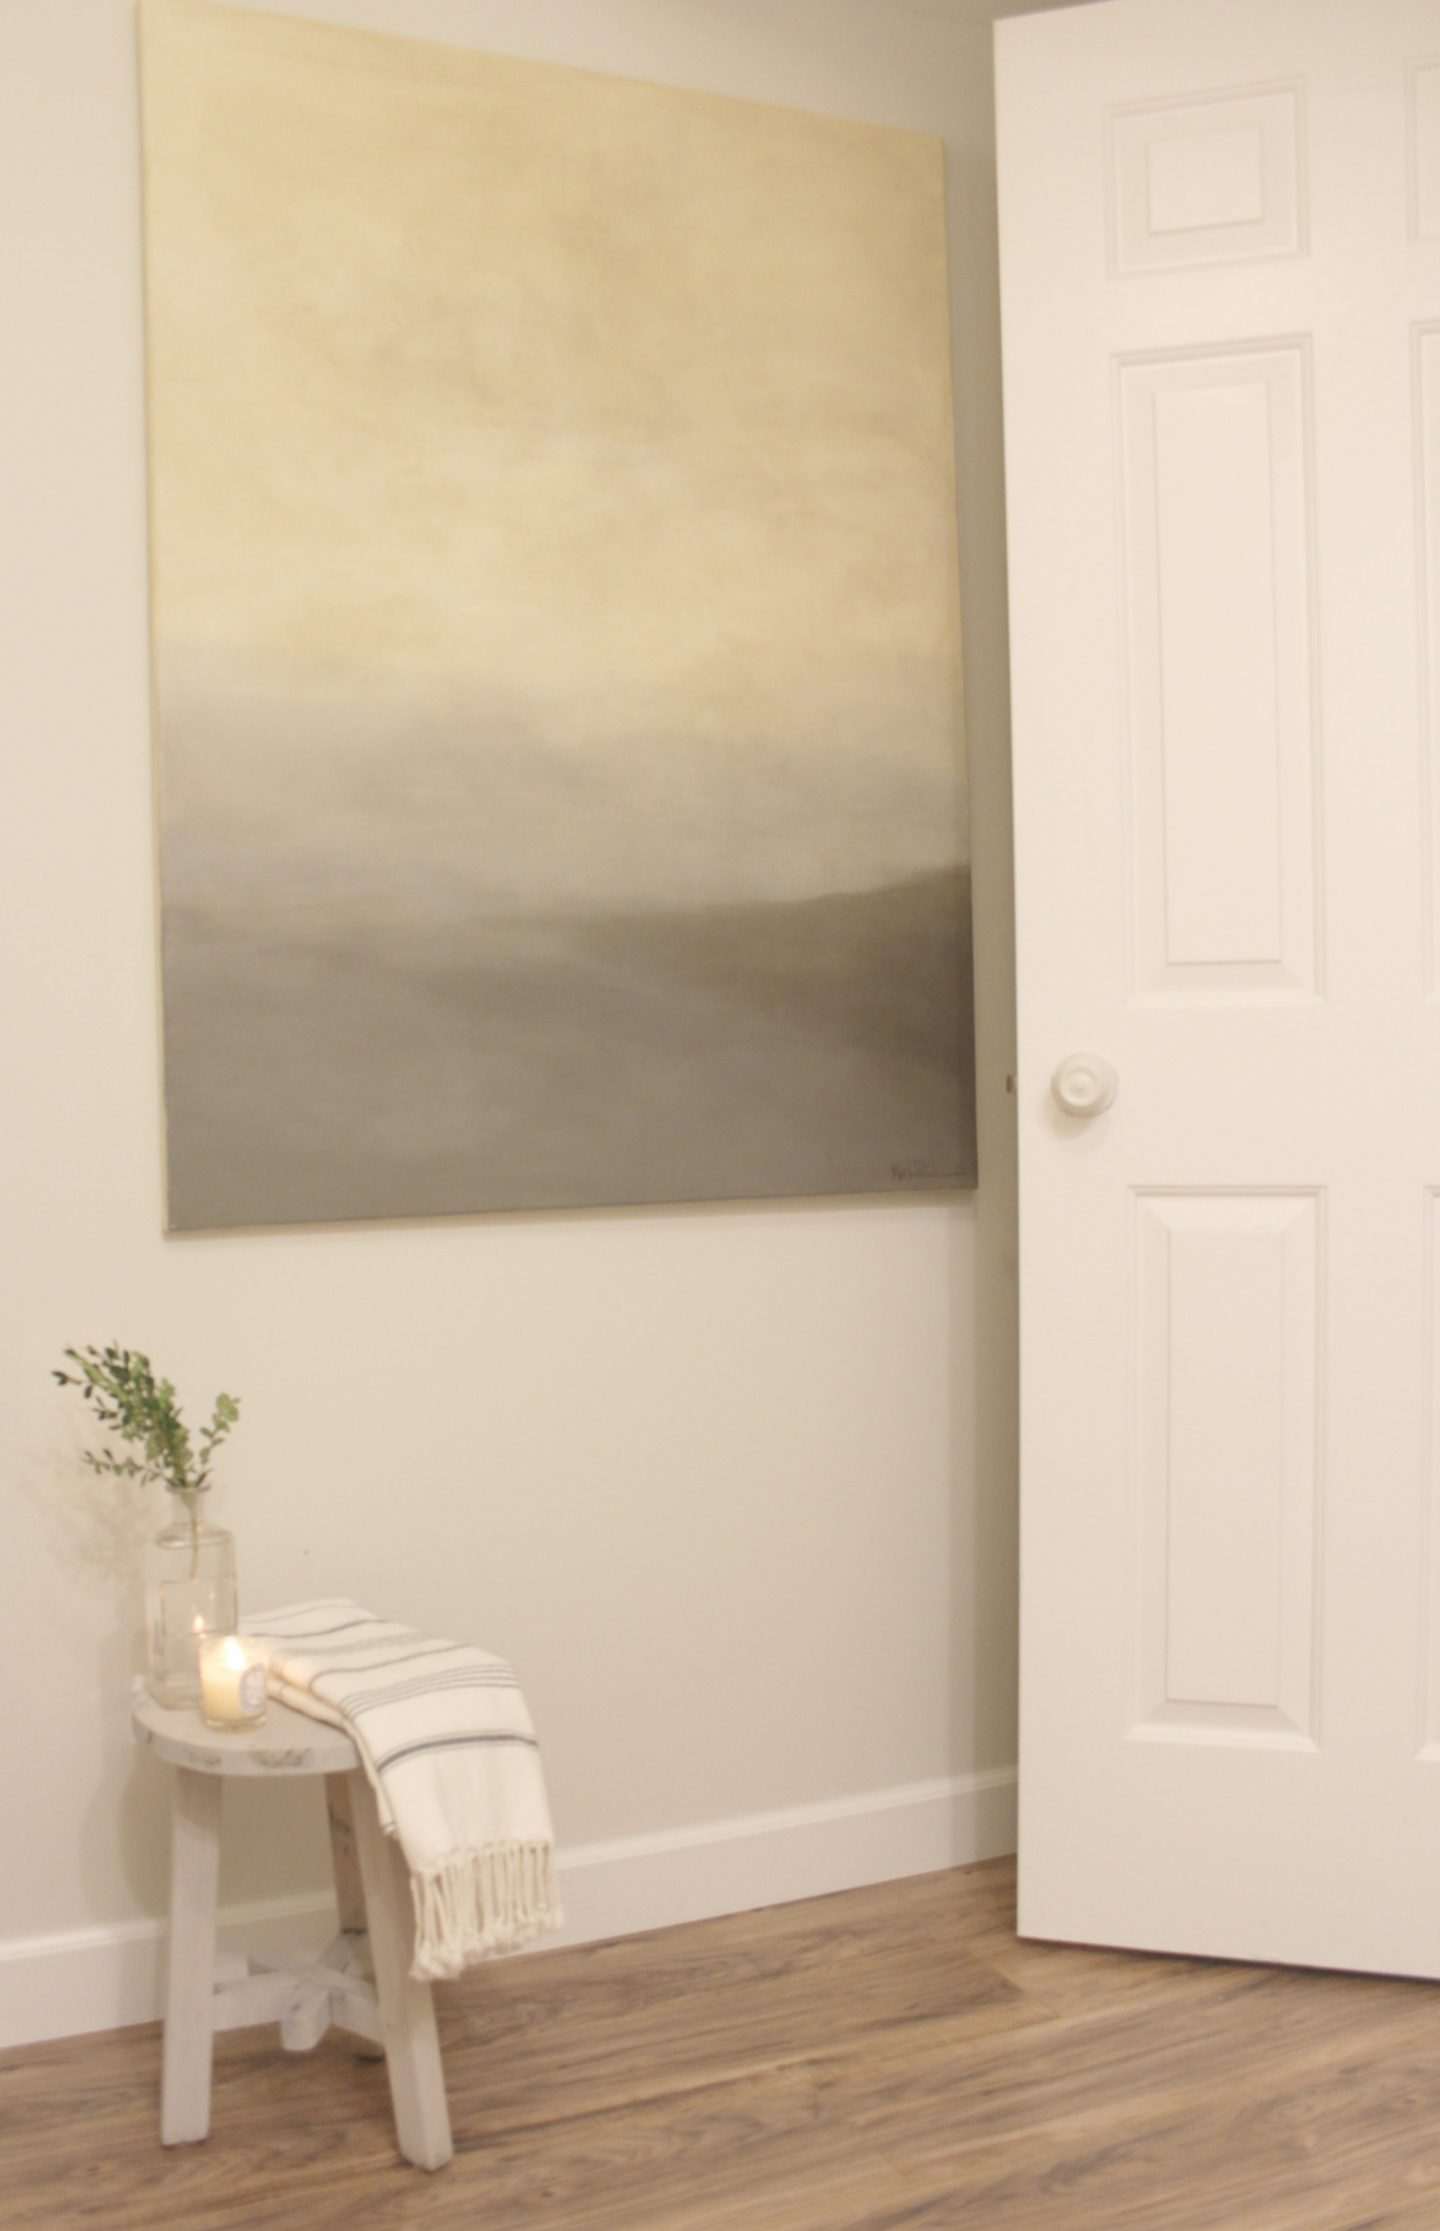 Classic Gray by Benjamin Moore paint color on wall with abstract landscape. #hellolovelystudio #classicgray #tranquilroom